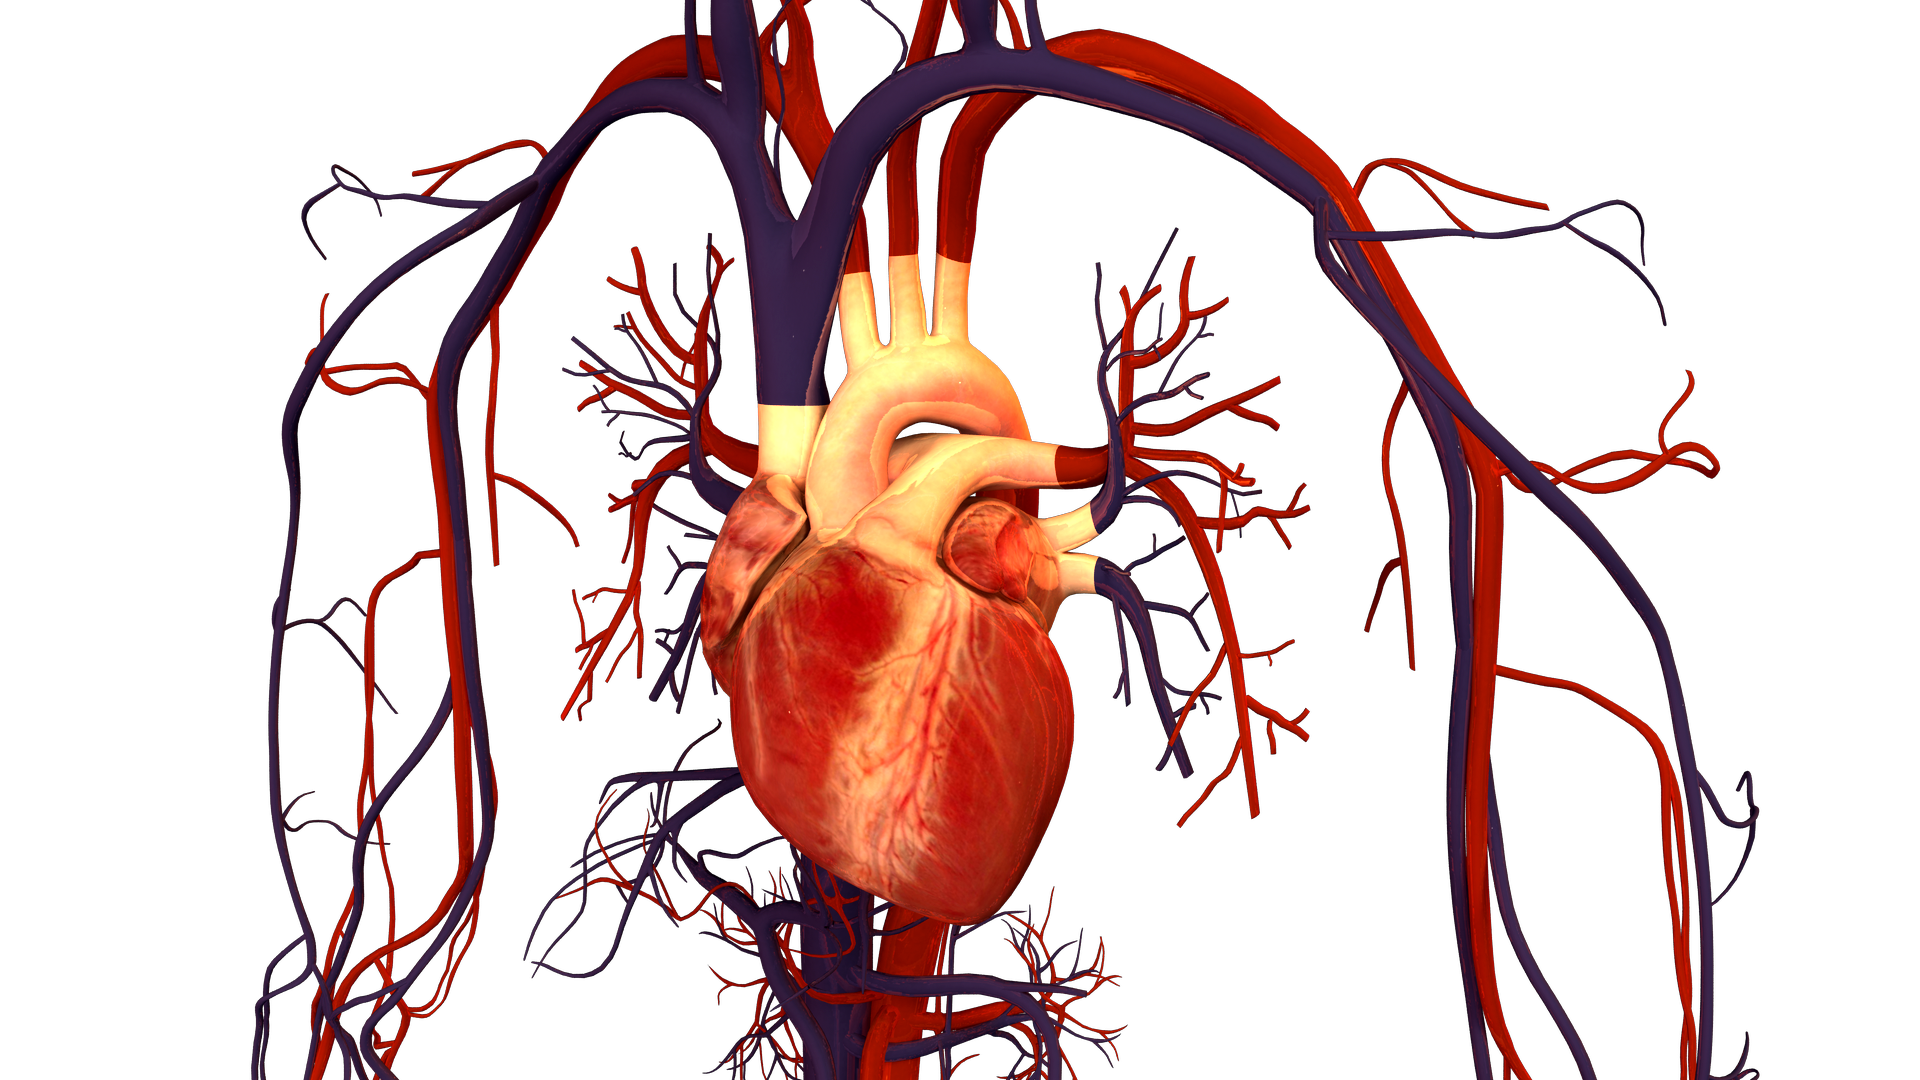 File:Human Heart and Circulatory System.png - Wikimedia Commons - Human Figure PNG HD